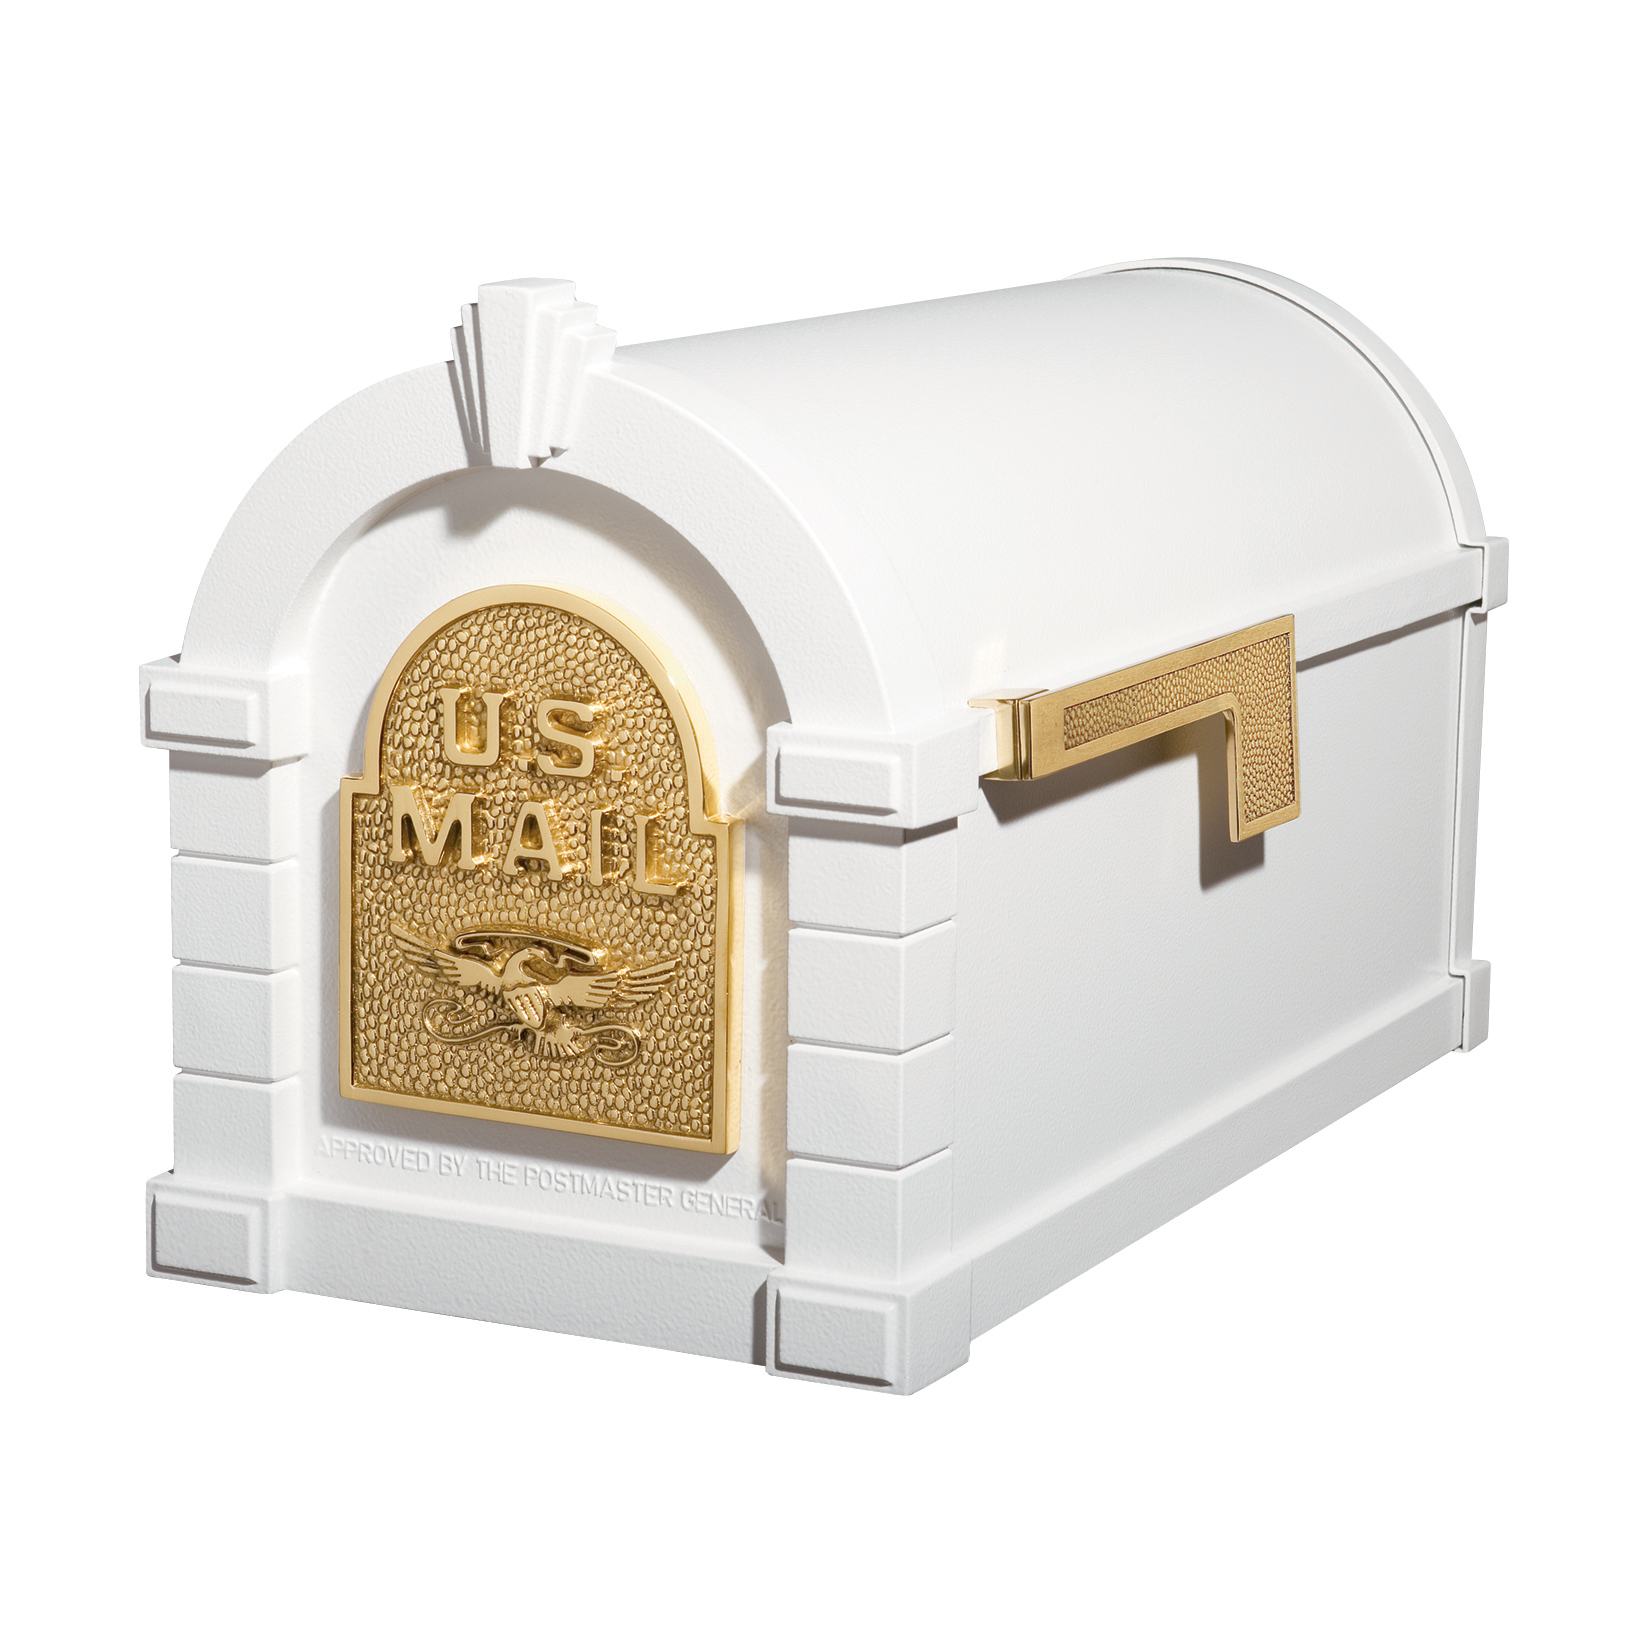 Gaines Eagle Keystone Mailboxes - White with Polished Brass